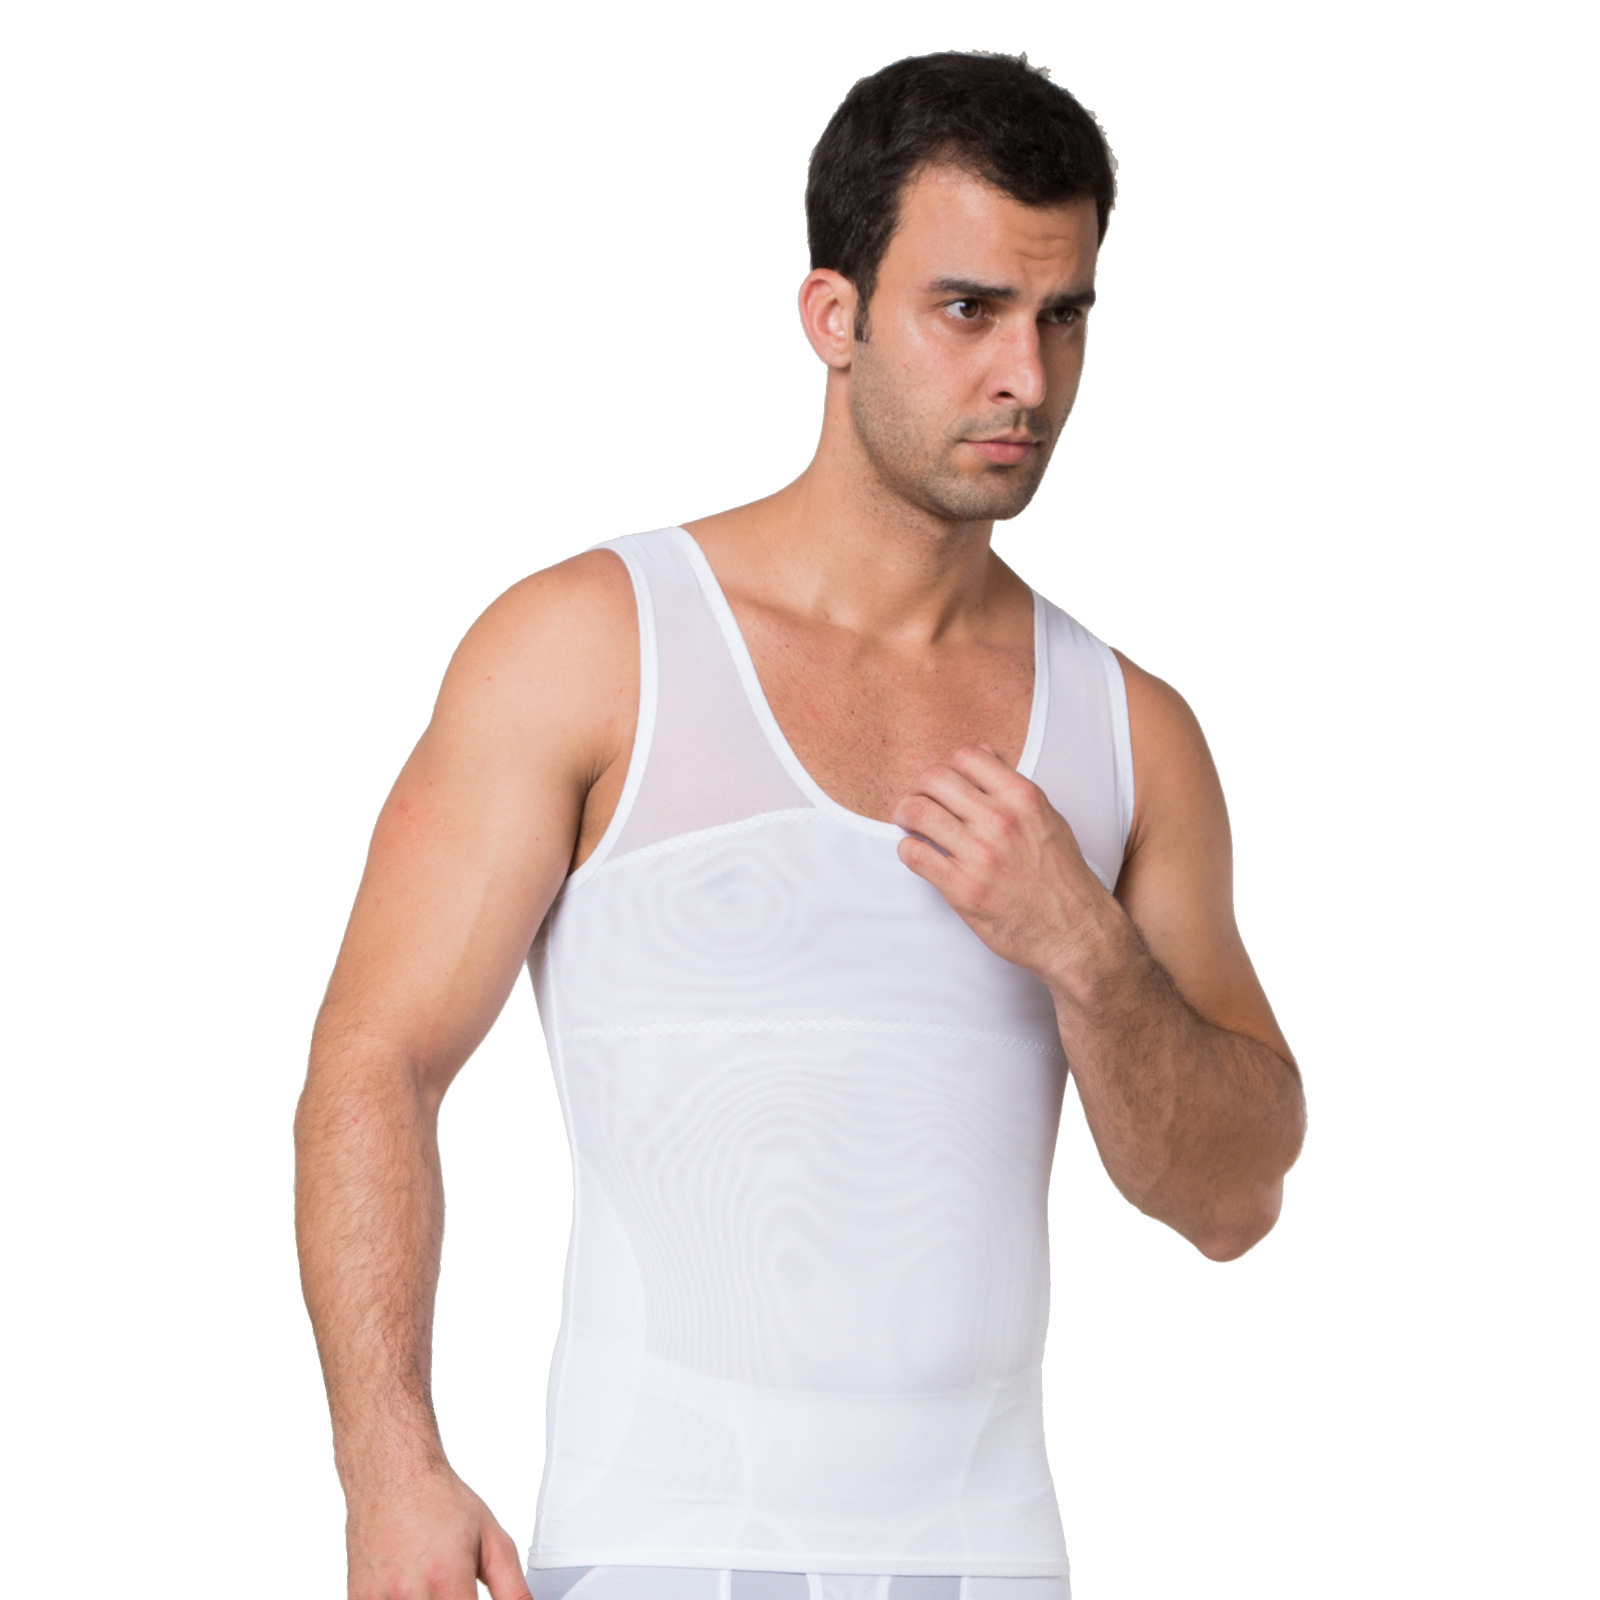 51e1b8ebd6ac0 2017 Men Shapers Summer Solid Sleeveless Firm Tummy Belly Buster Vest  Control Slimming Body Shaper Underwear Shirt Tank Top-in Shapers from  Underwear ...